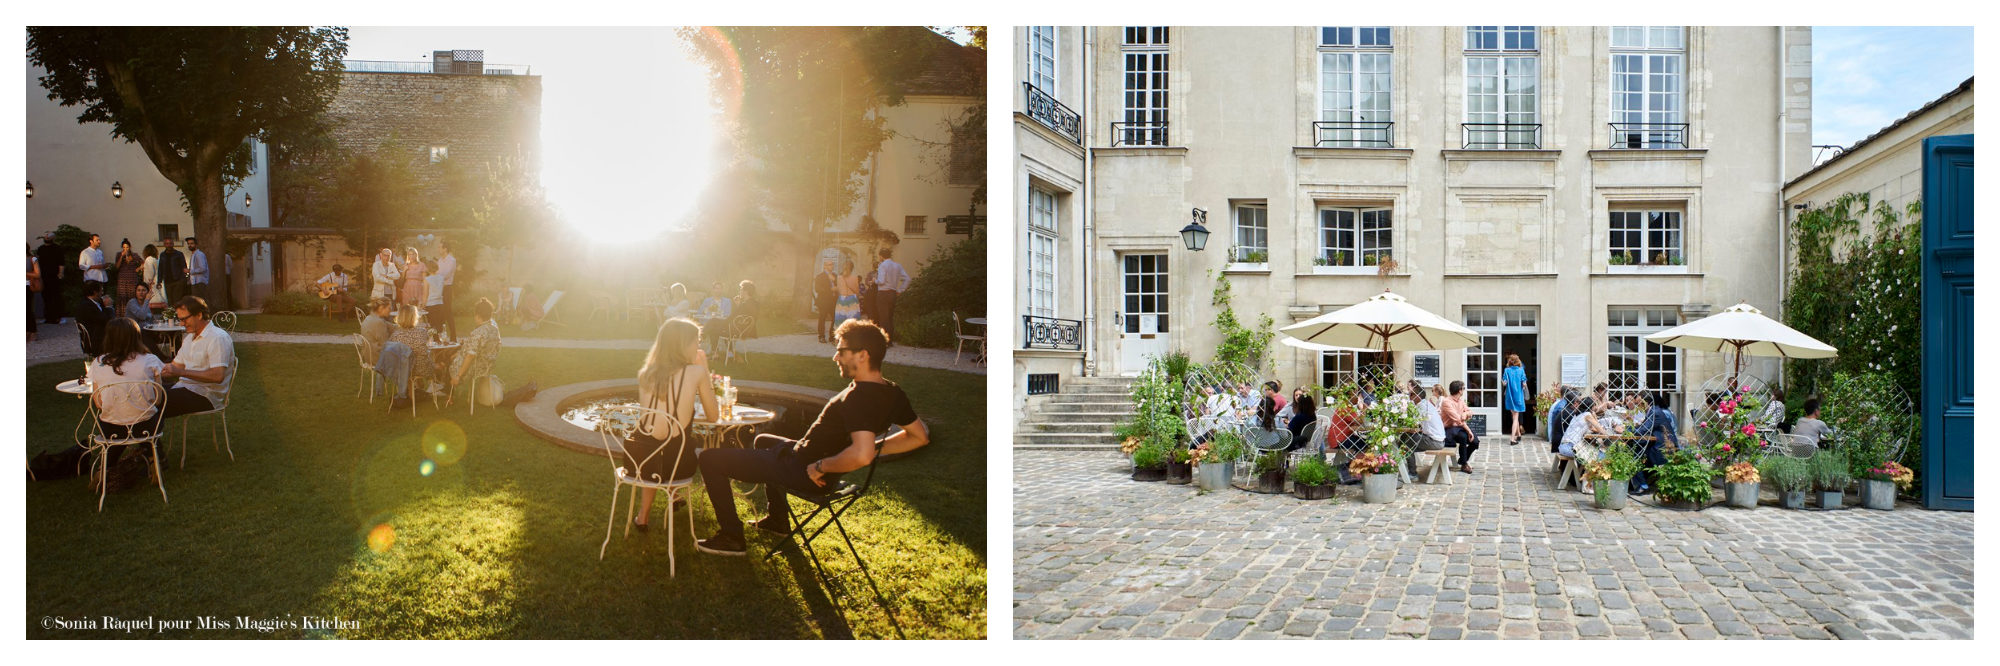 A garden with the sun shining and people sitting around tables in Paris. A Parisian courtyard with people sitting under around cafe tables